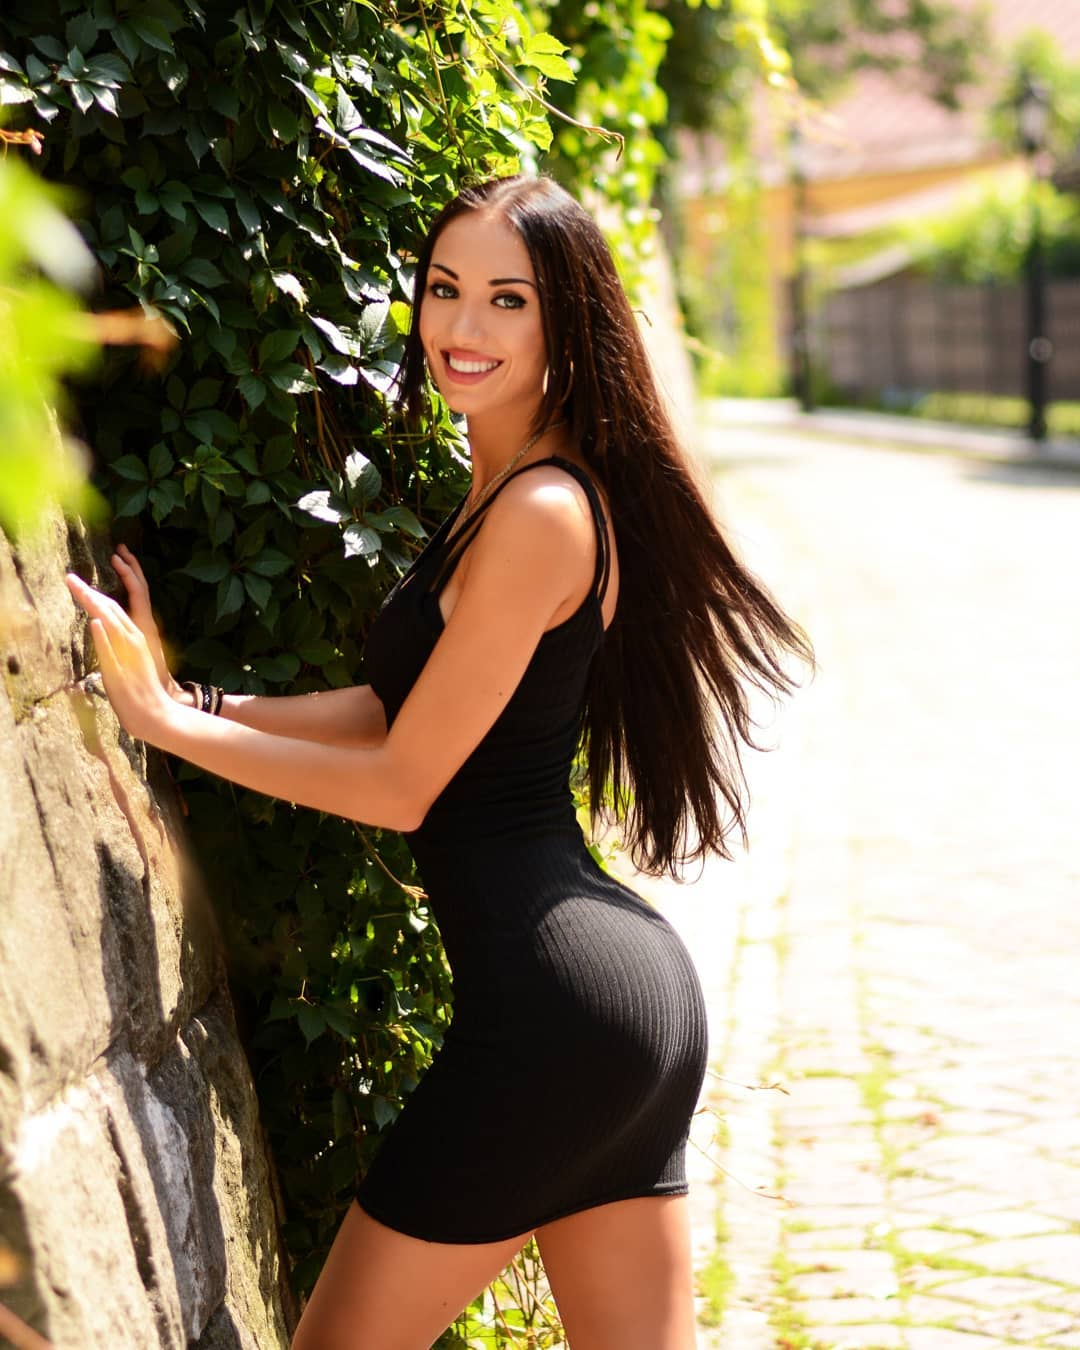 Kira-Bilko-Wallpapers-Insta-Fit-Bio-4